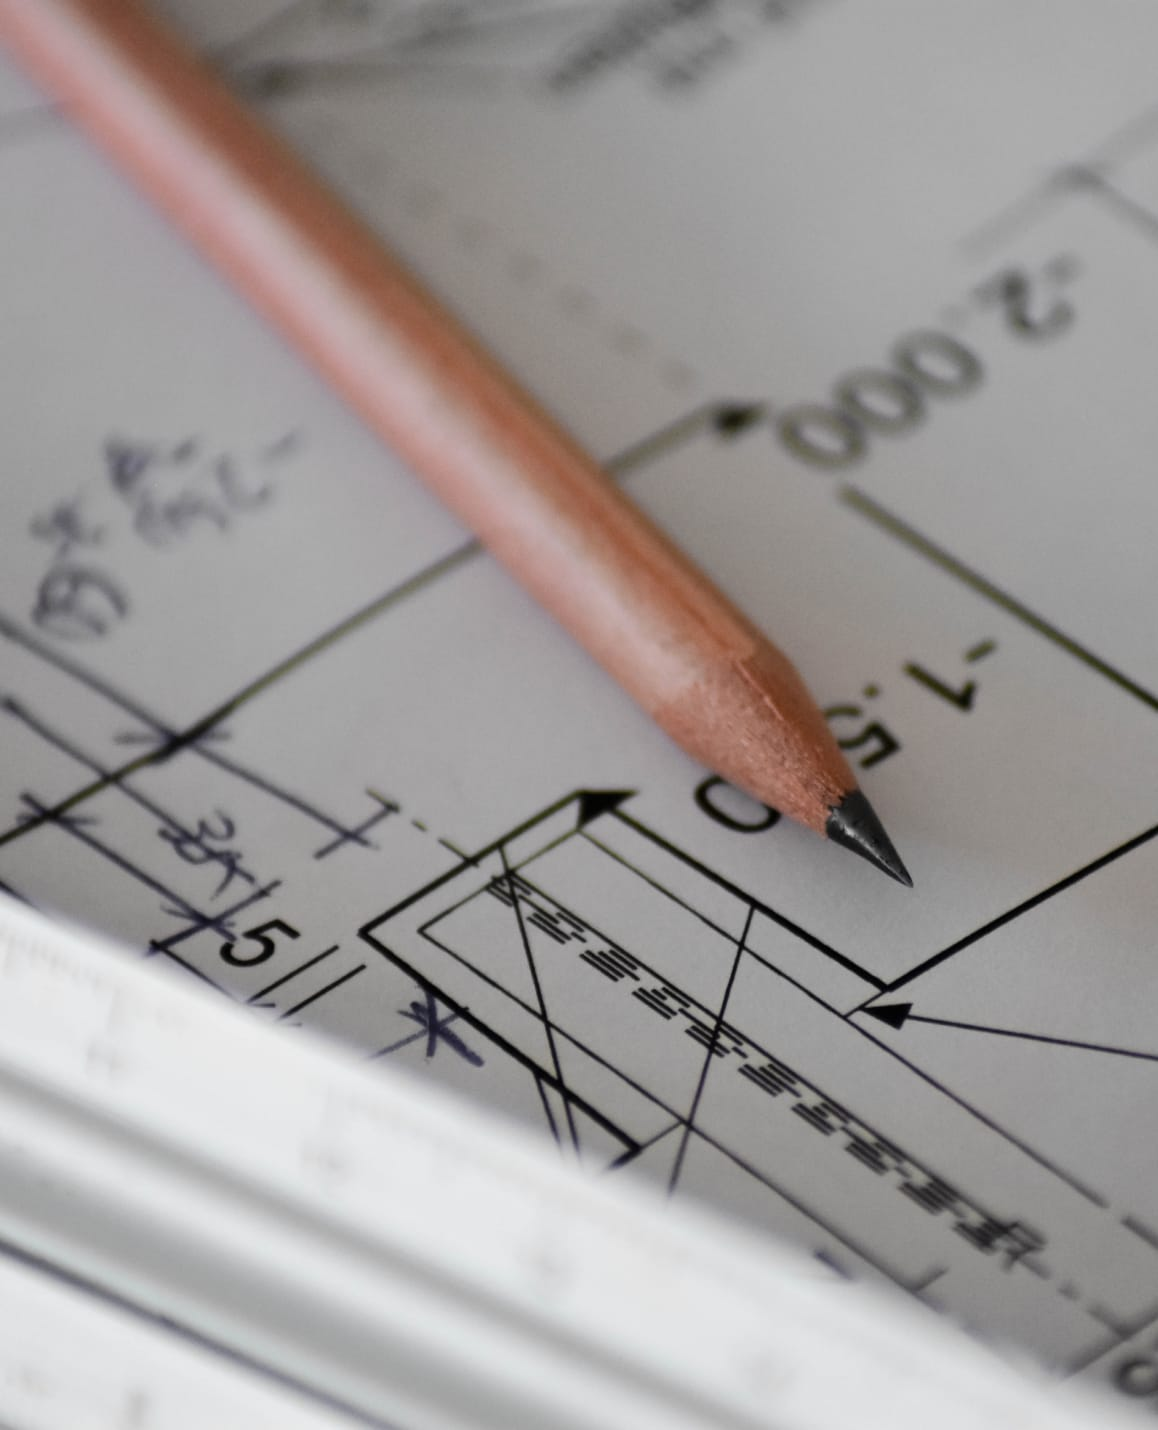 Pencil laying on top of blueprint house drawings